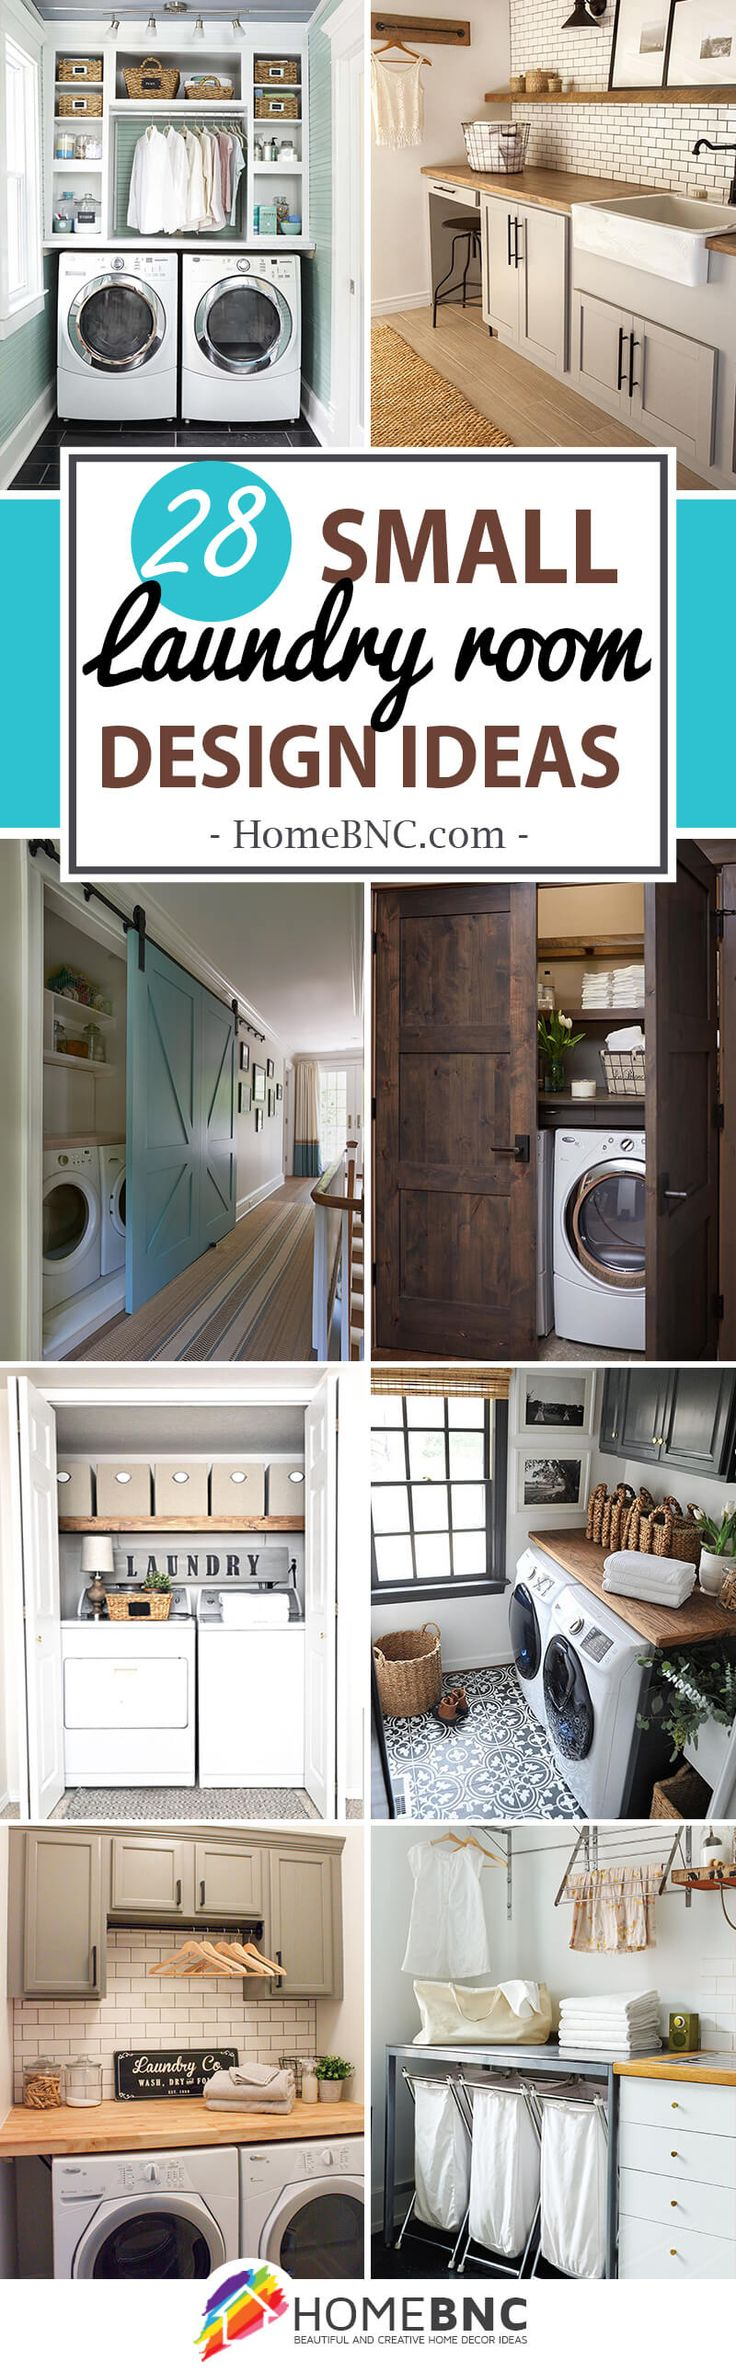 Interior design ceiling types bonus rooms - 28 Beautiful And Functional Small Laundry Room Design Ideas That Will Transform Your Space